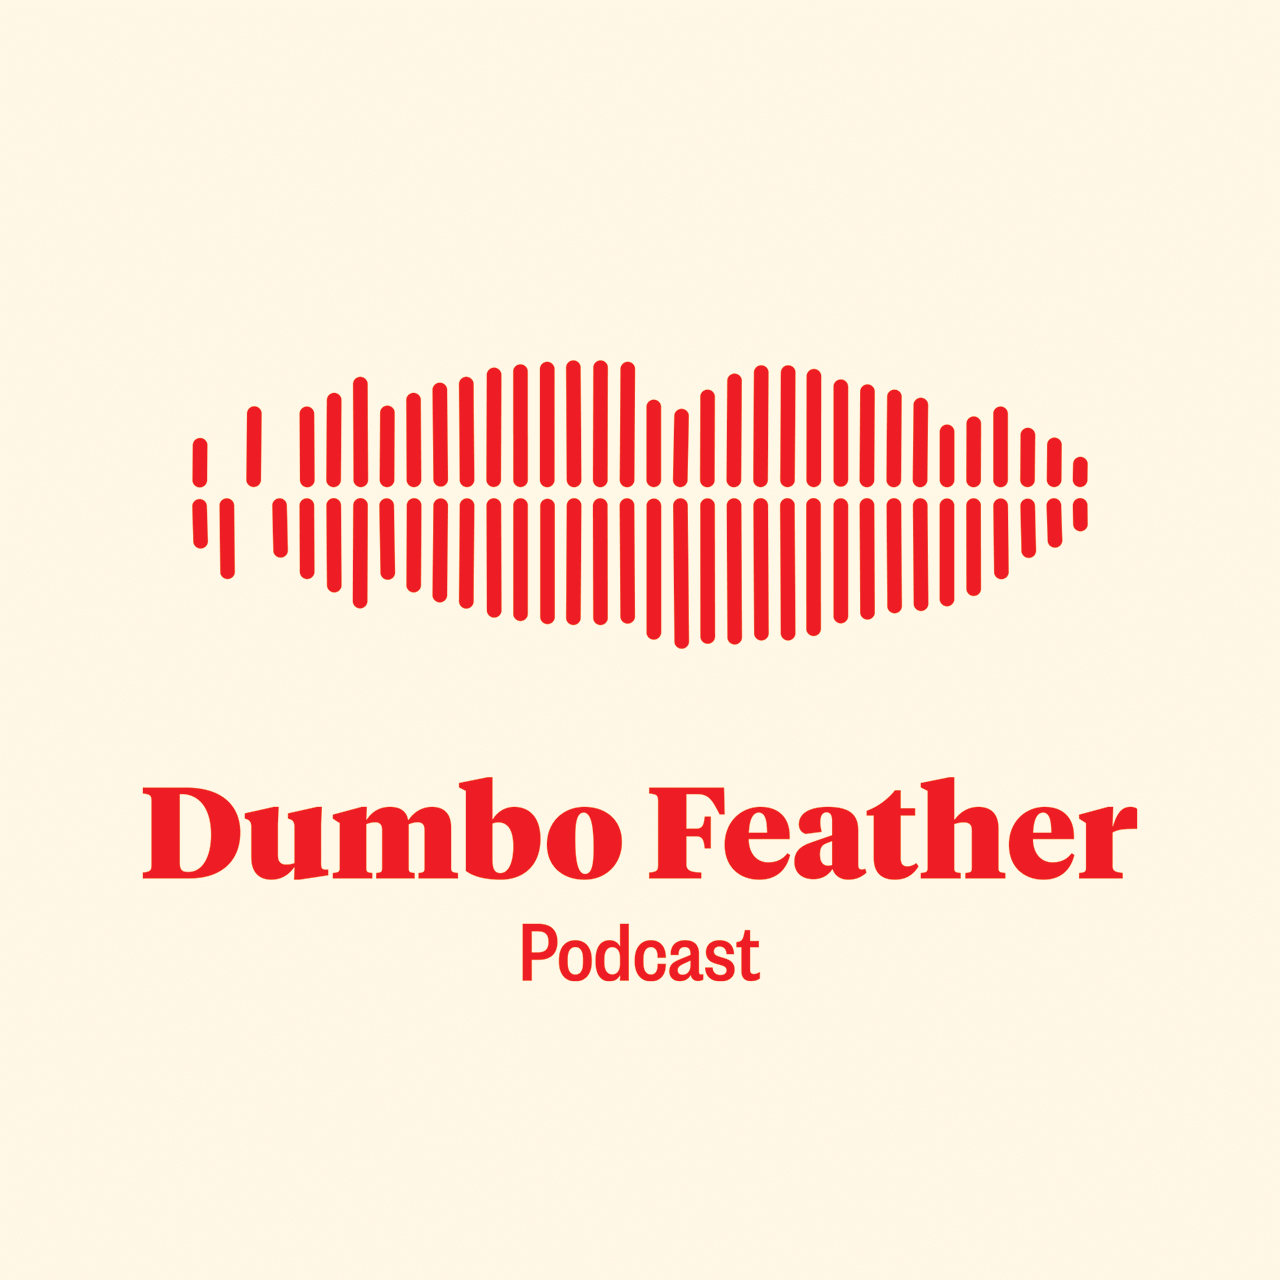 Logo design for Dumbo Feather Podcasts